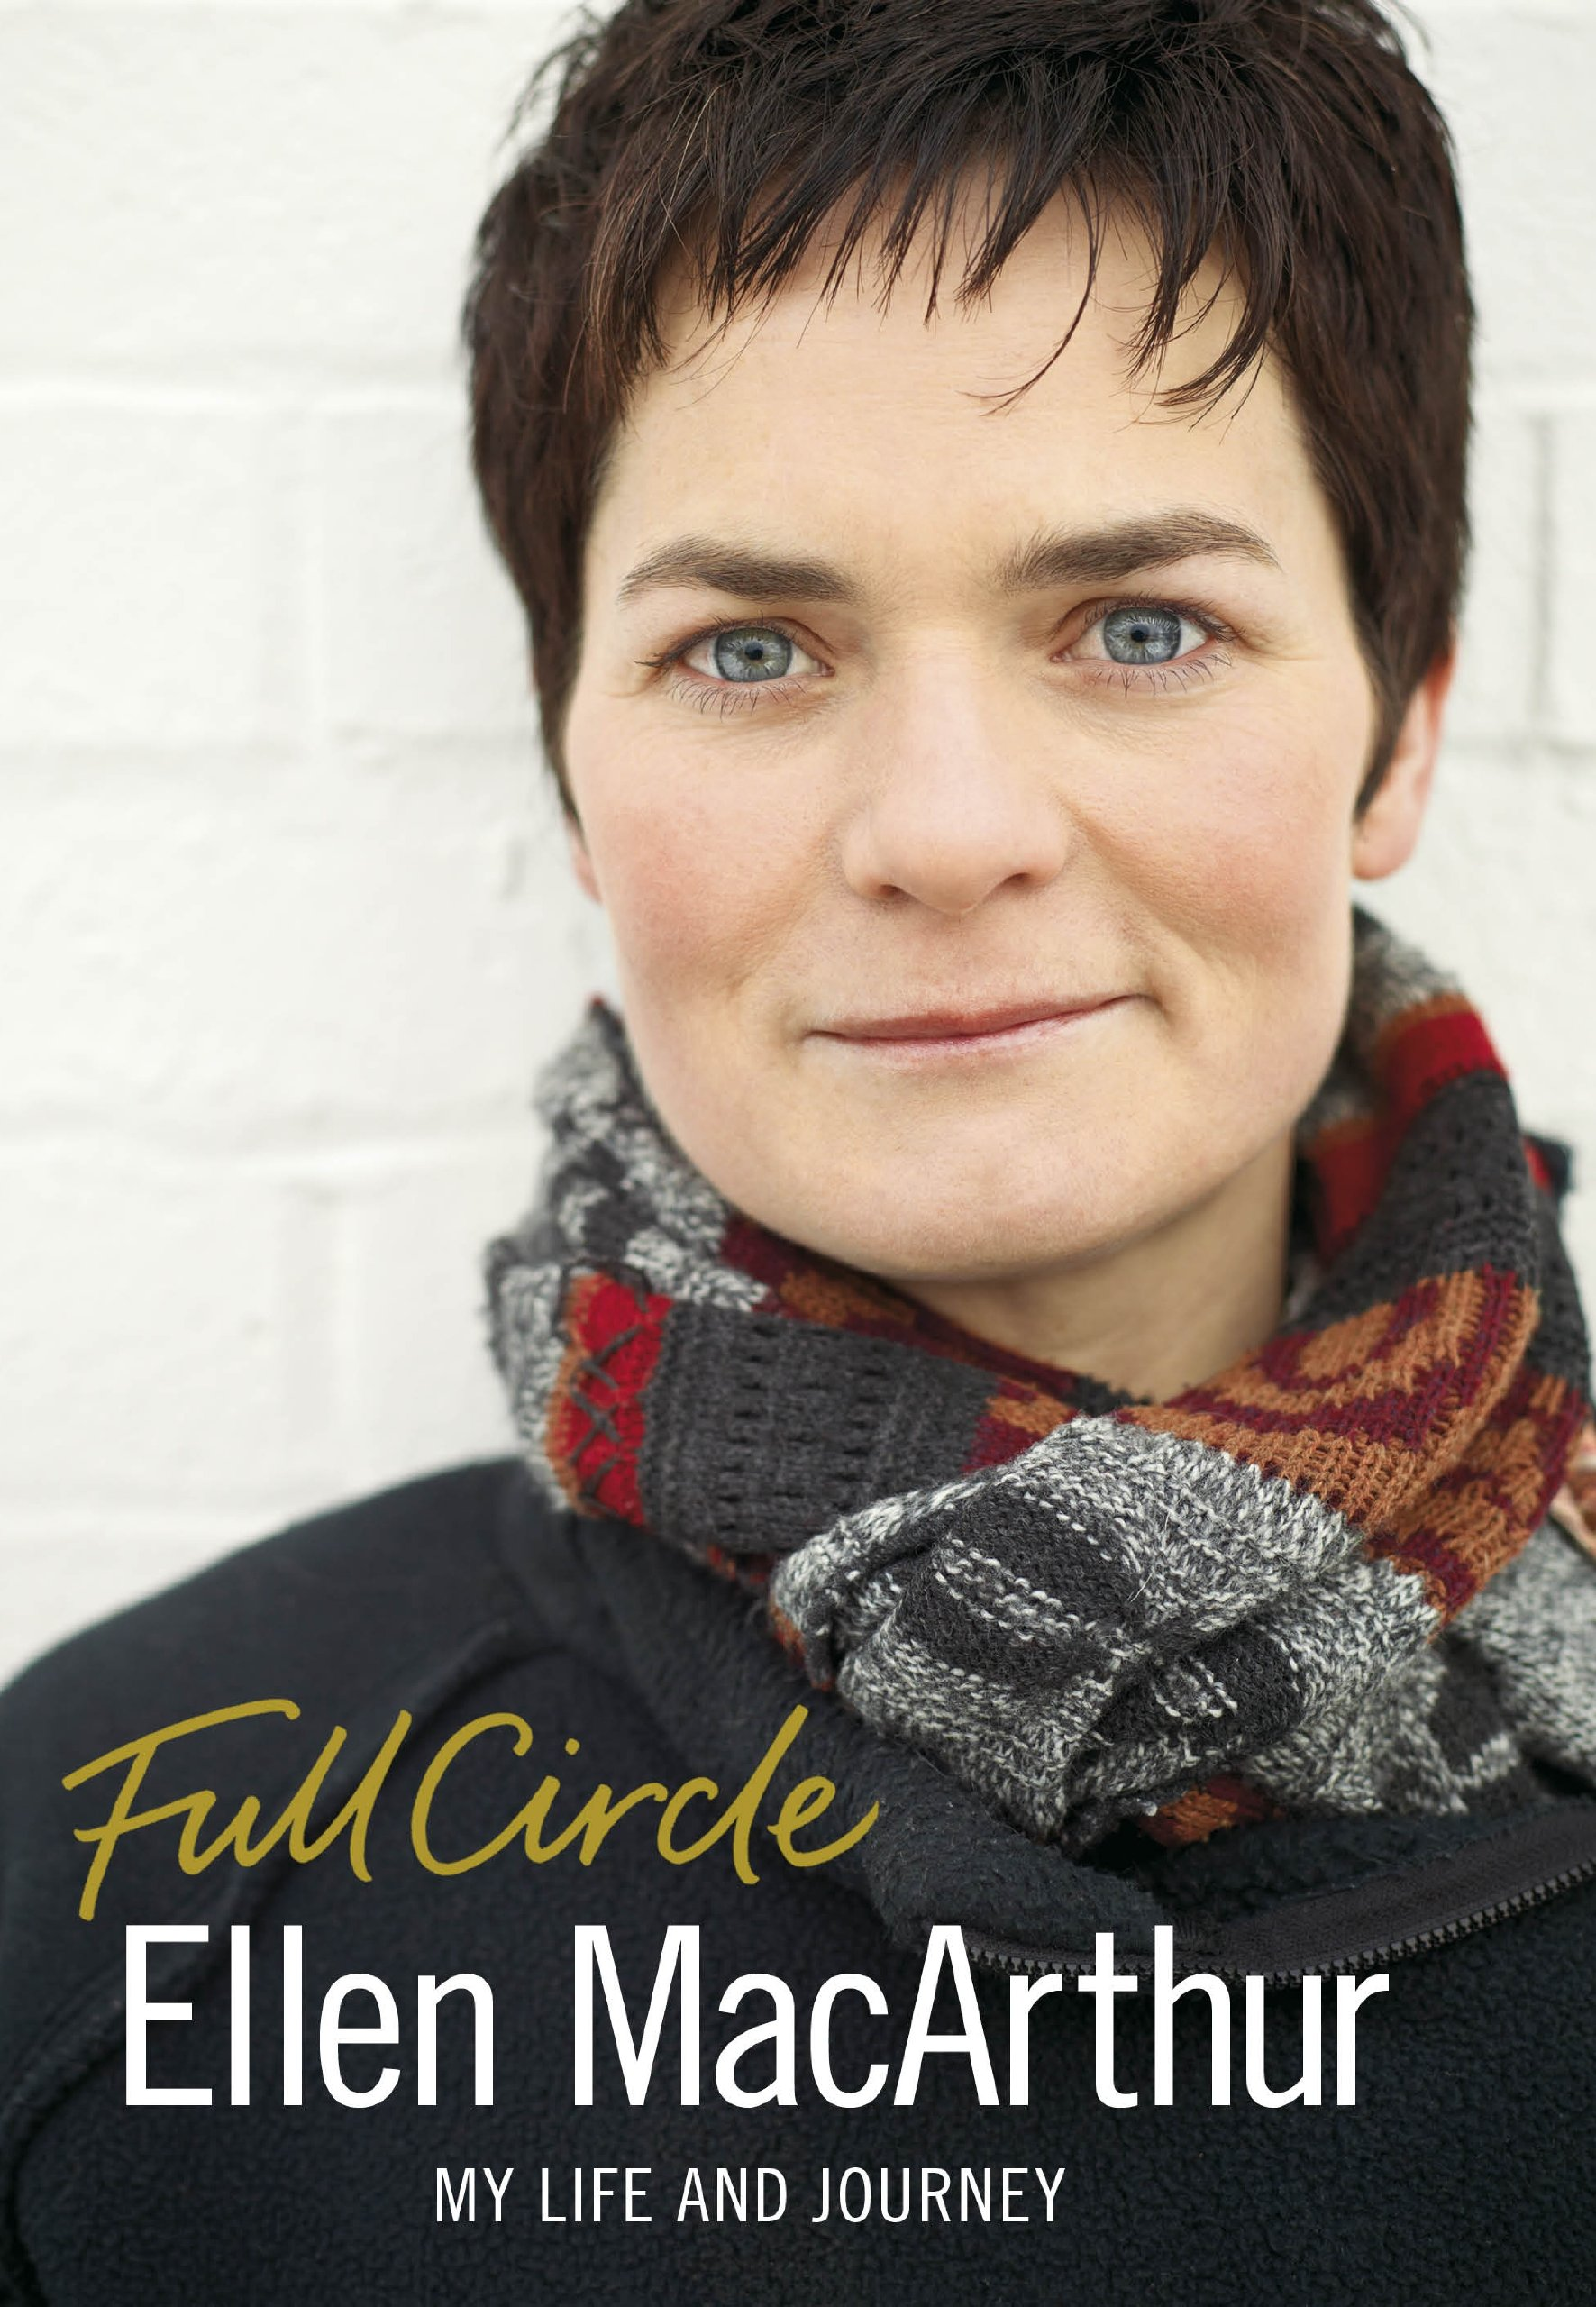 Full Circle by Ellen MacArthur (Author) ISBN: 9780718148638 Published by Penguin Books Limited.